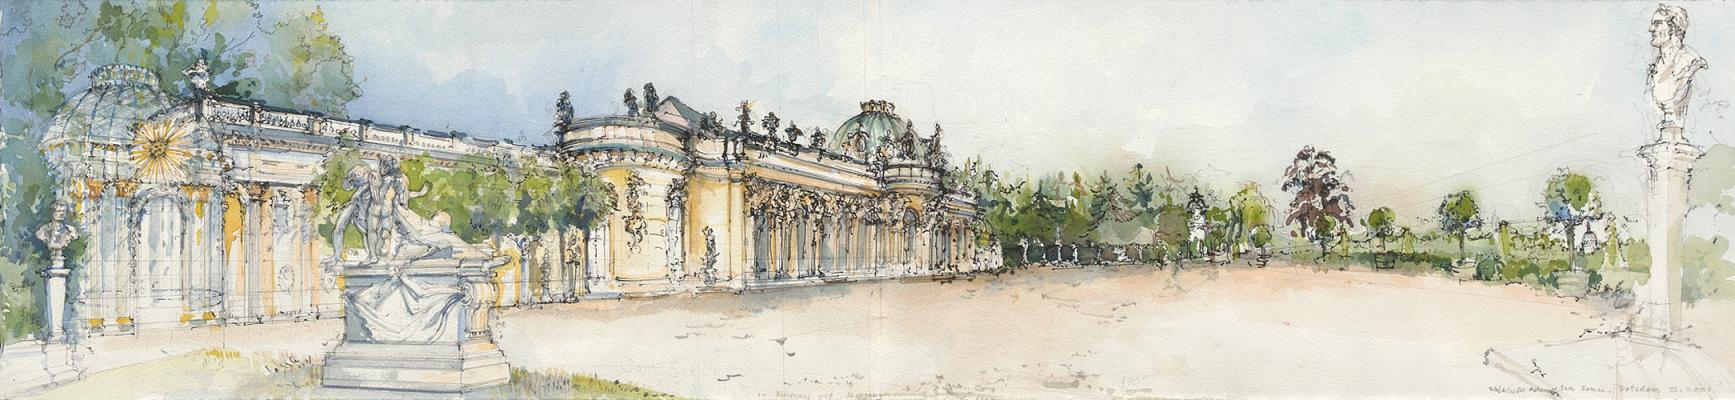 Palace of Frederick the Great, San Souici, Potsdam 2001, pencil, ink, and waterc